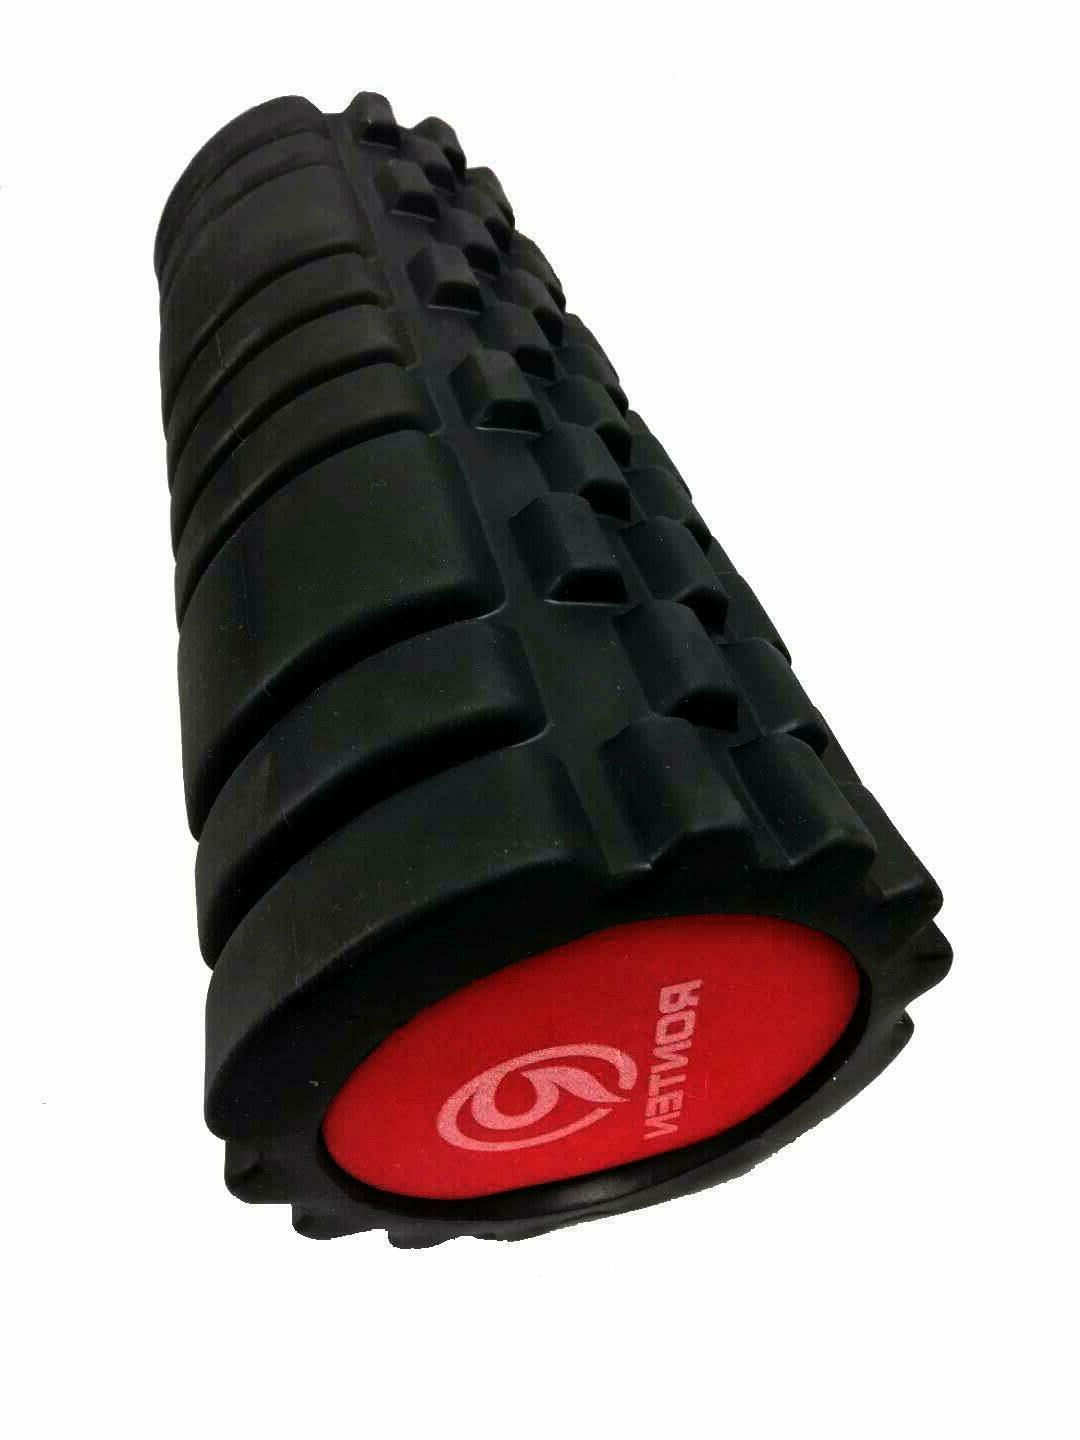 foam roller firm fitness exercise stretch tool